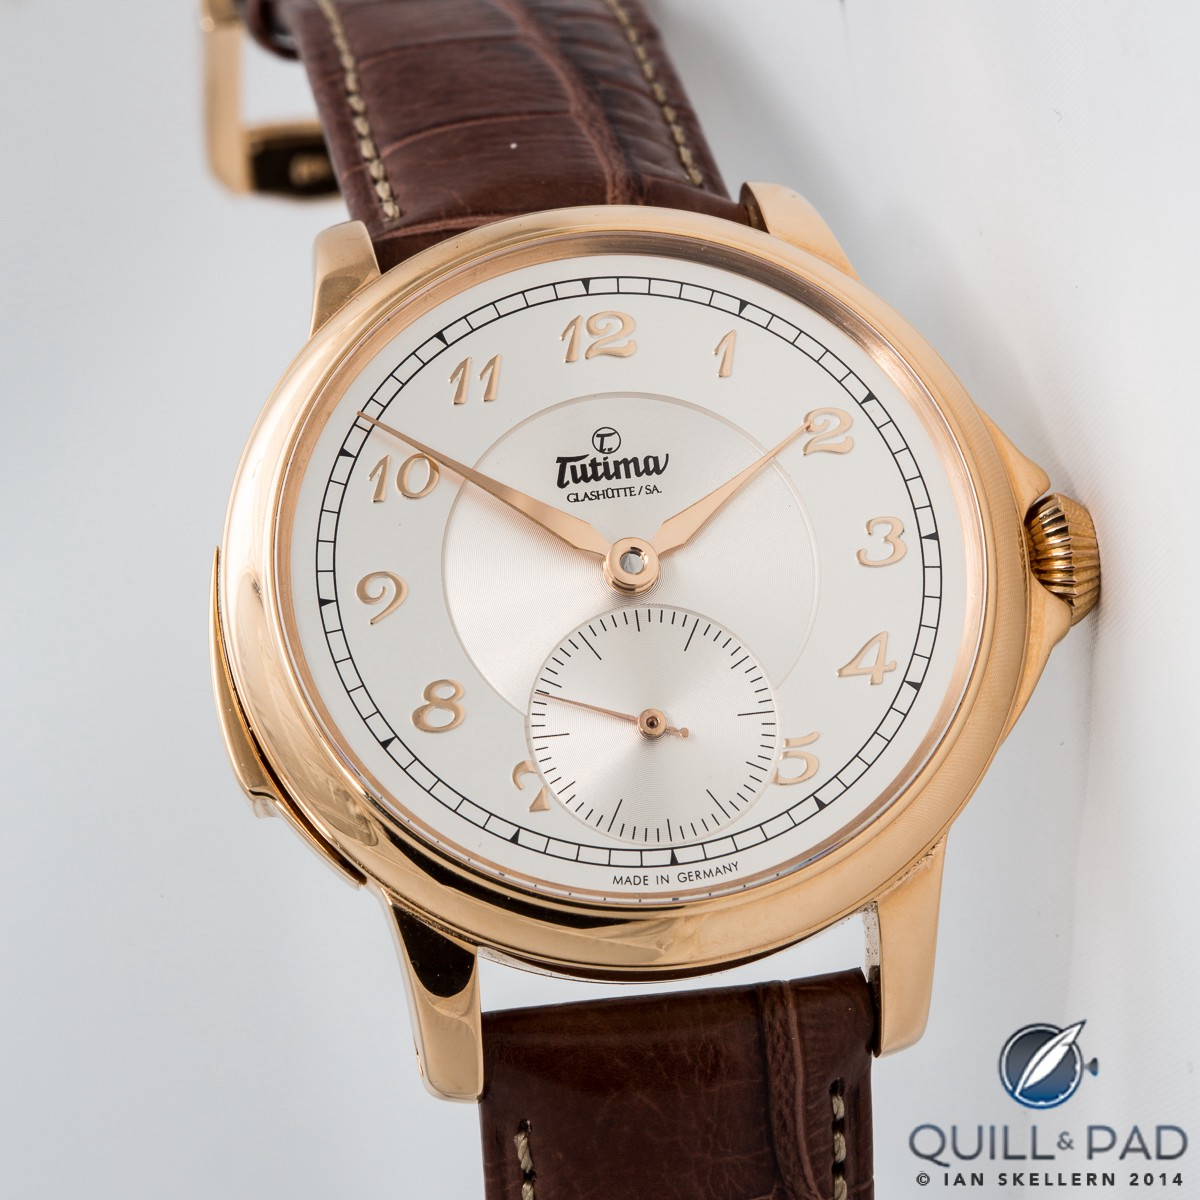 Tutima Hommage Minute Repeater in red gold with classic dial